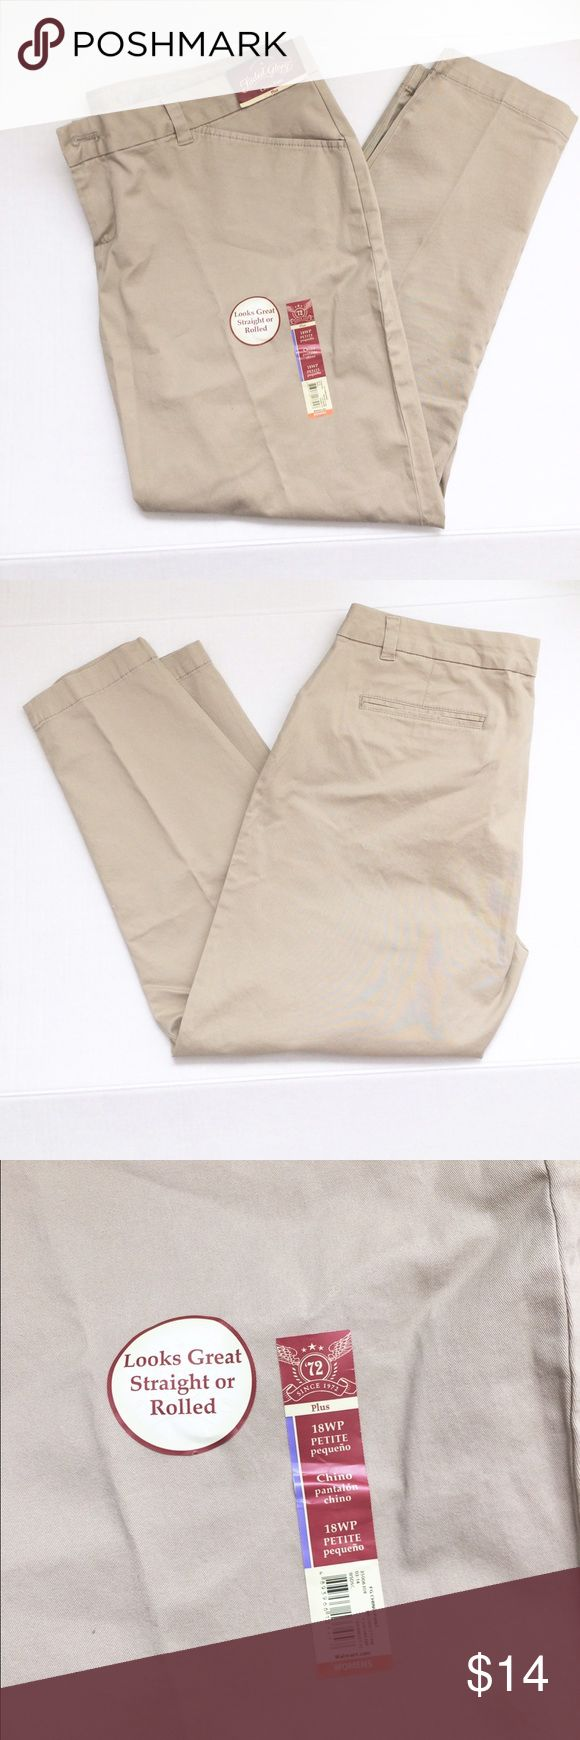 Women's Khaki Pants (NWT) Women Khaki Pants. They are a size 18W Petite. They are Brand New with Tags and have never been worn. They were bought for me when I worked but I can not wear Petite Fit. Measurements Can be Given Upon Request. Price is negotiable so make me an offer!👍🏻 Thank You.☺ ❌No Trades❌ Pants Straight Leg